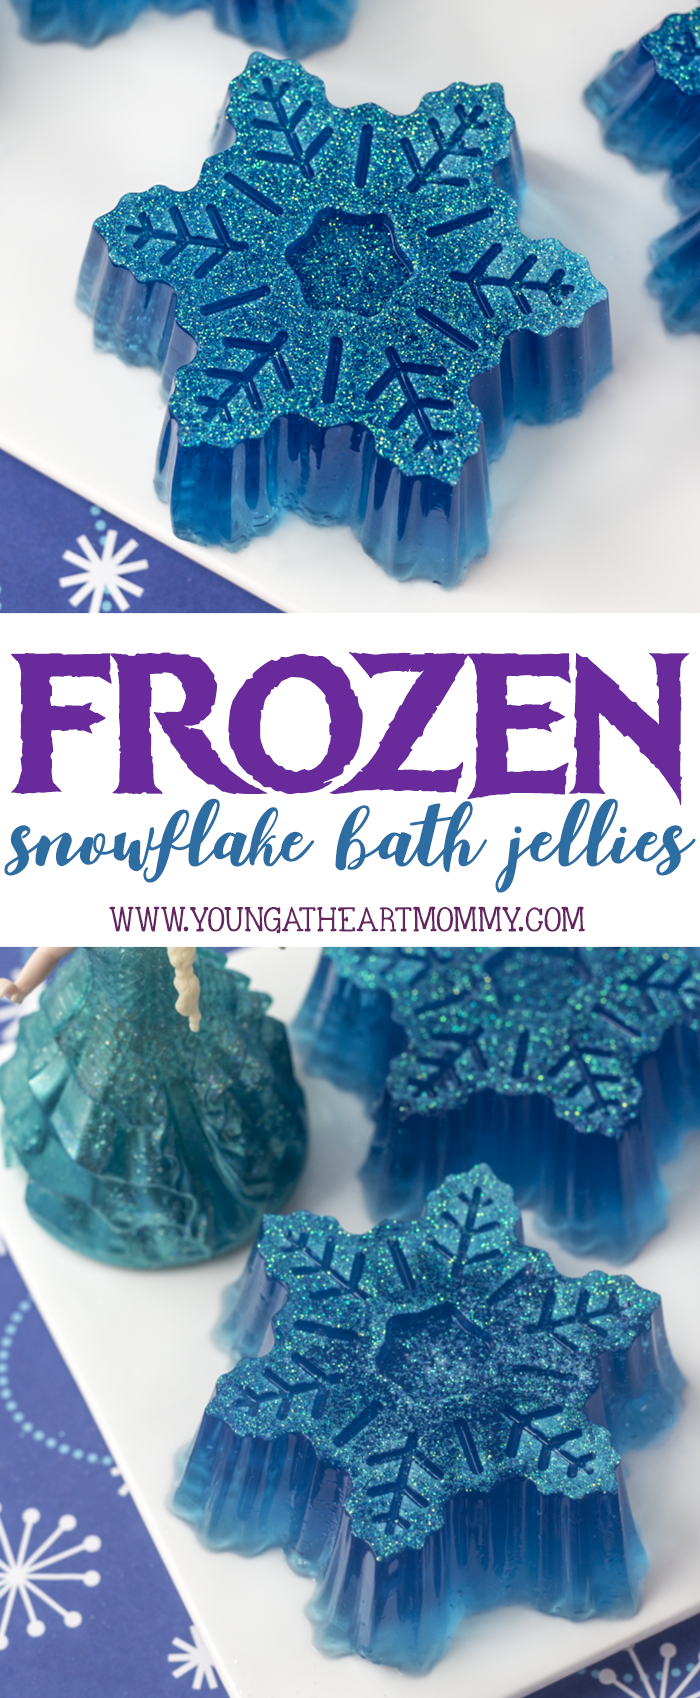 Disney Inspired Frozen Snowflake Bath Jellies